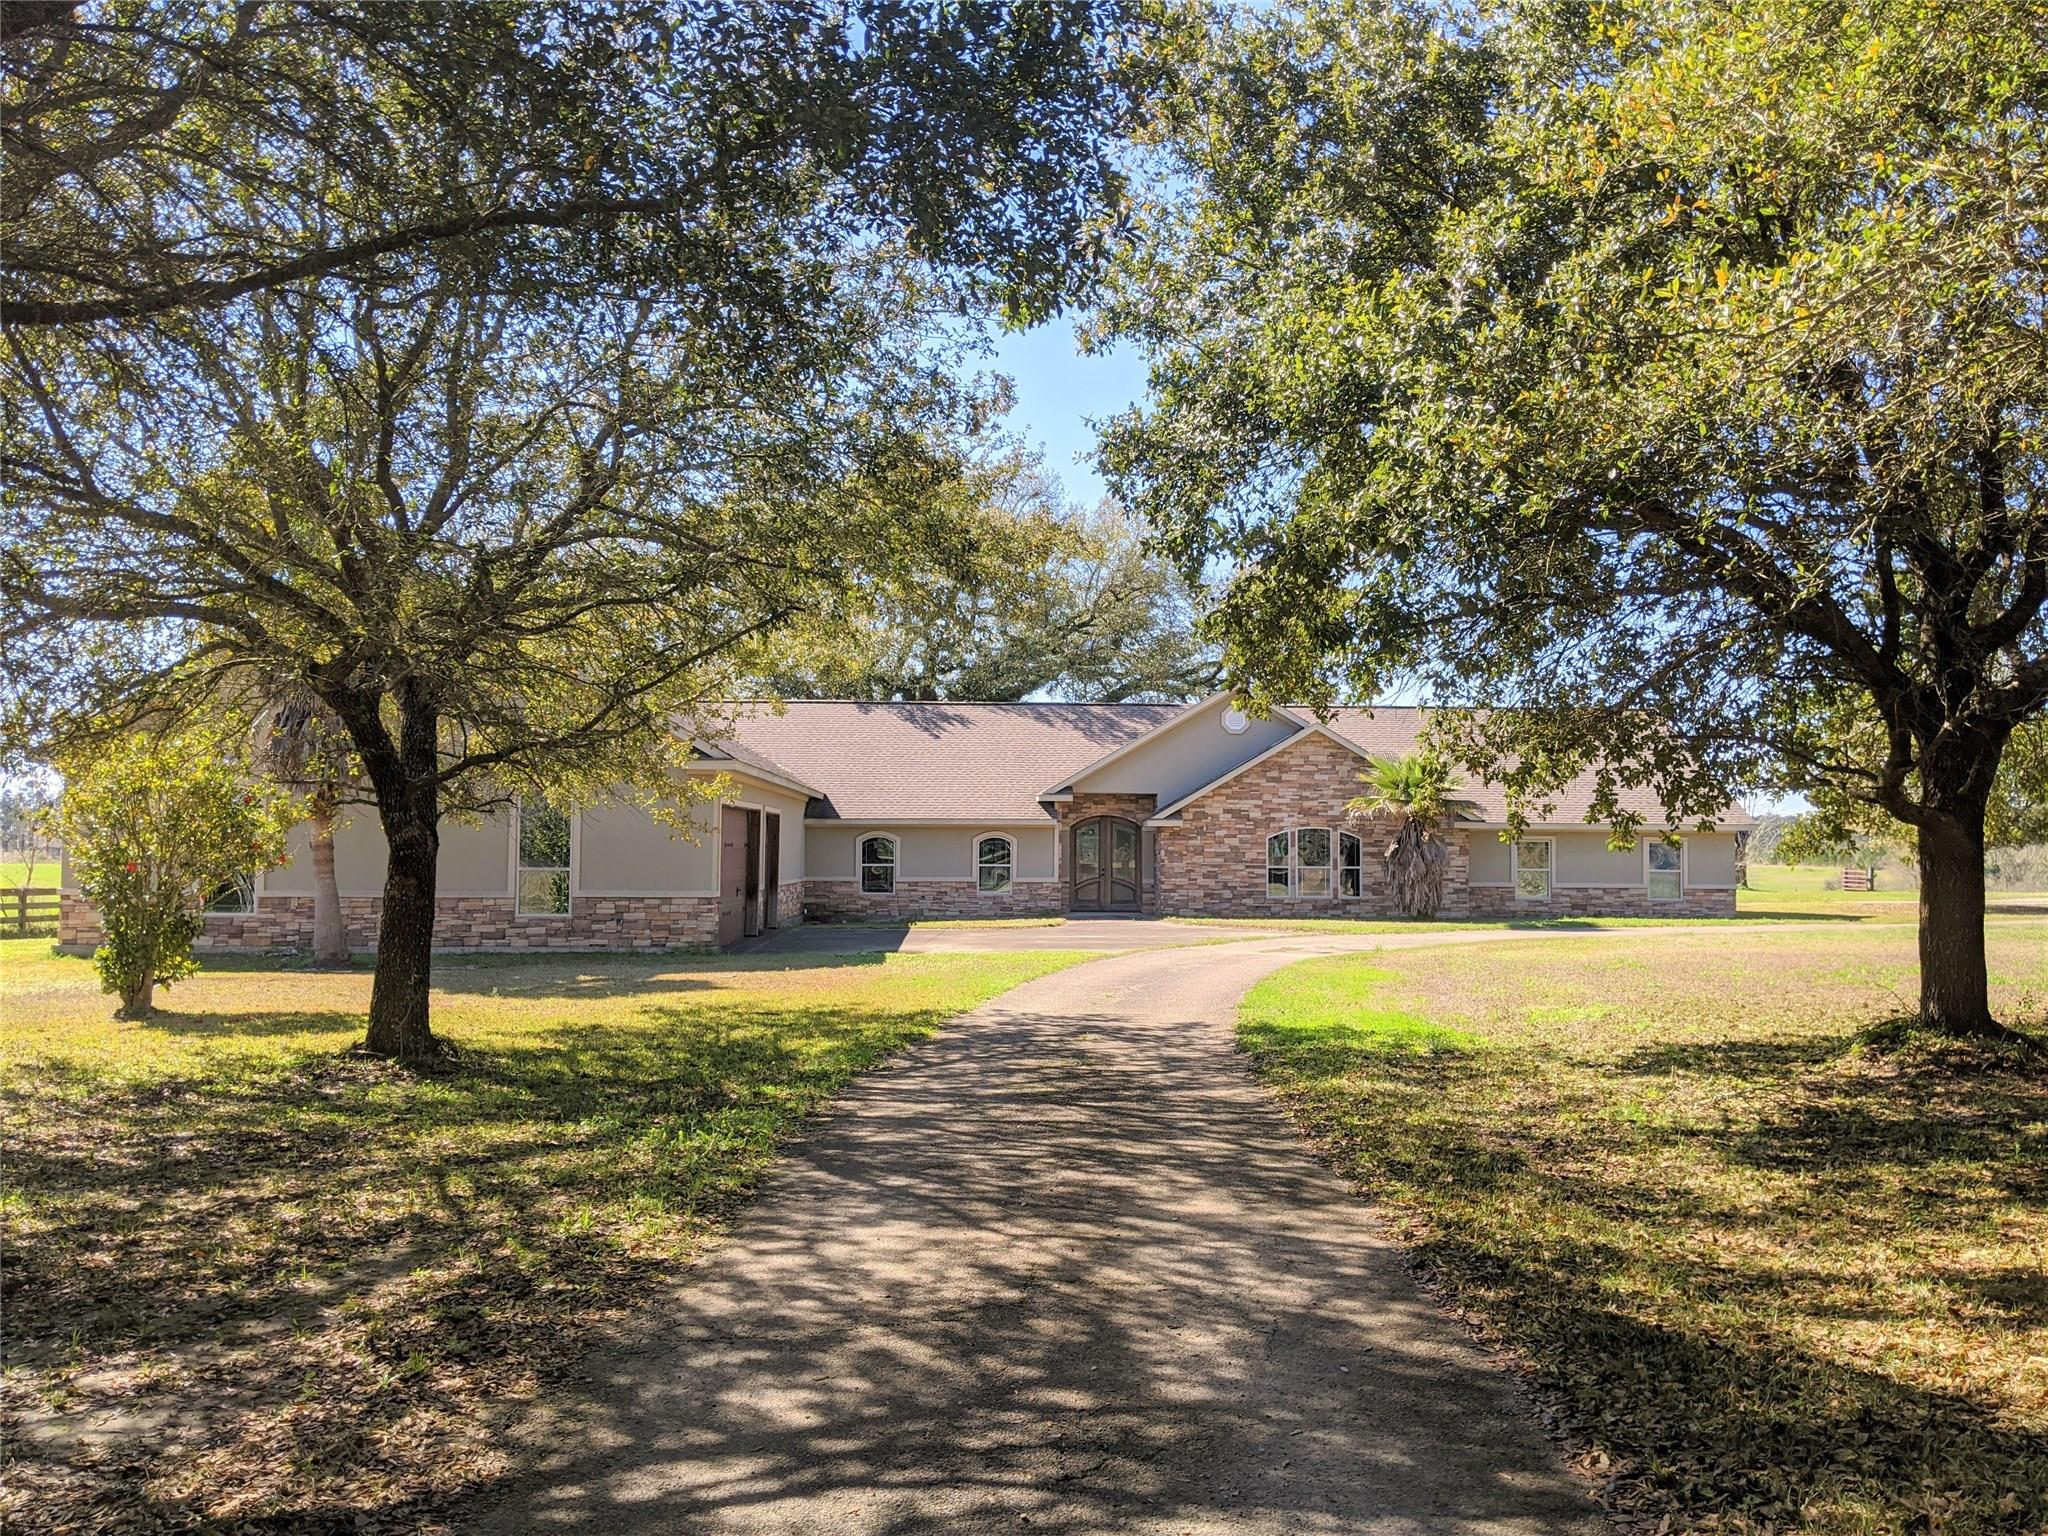 6208 Fm 1005 Property Photo - Kirbyville, TX real estate listing